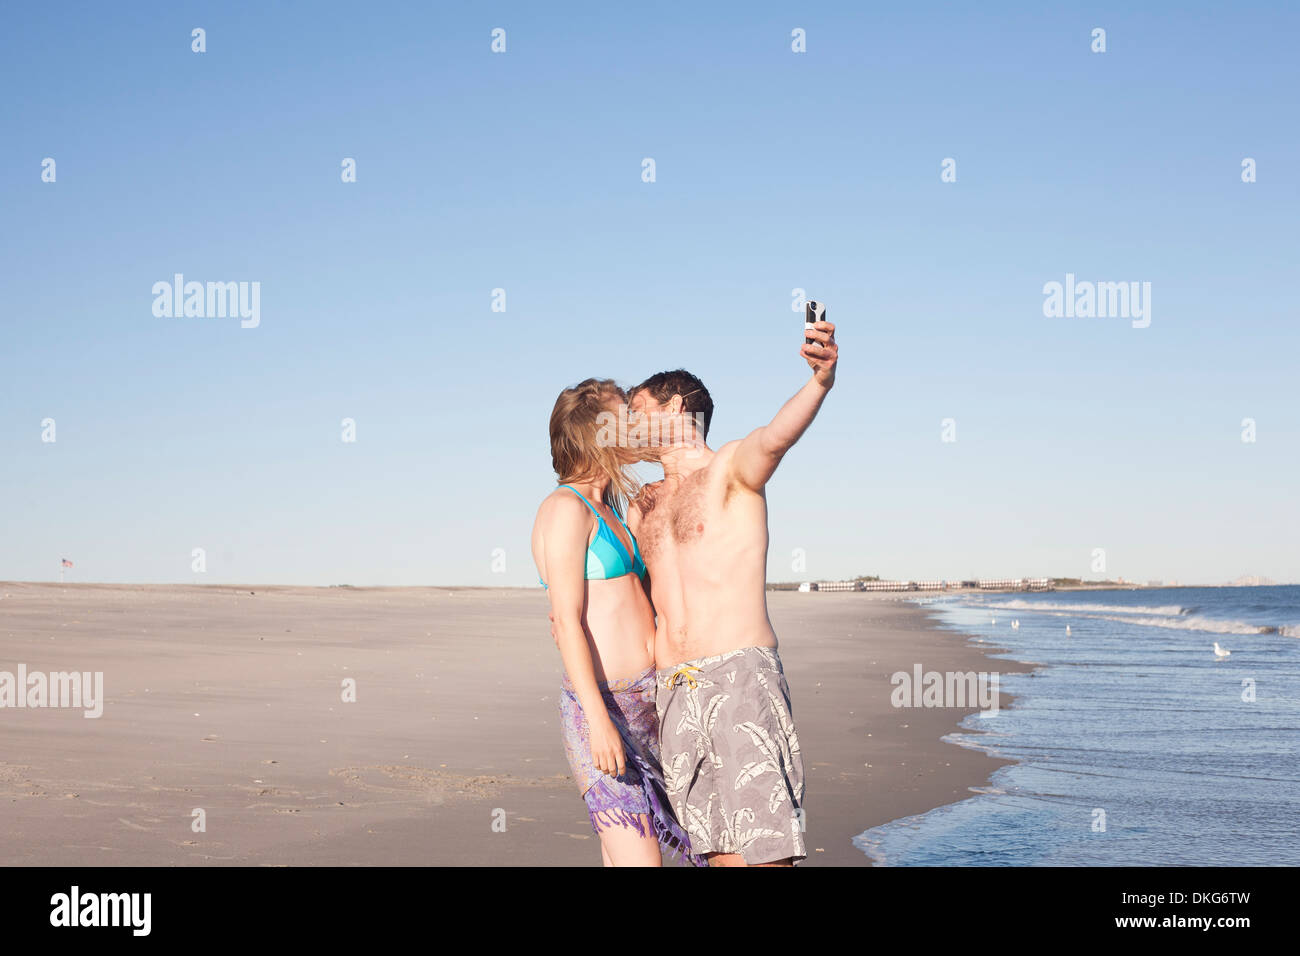 Couple taking self portrait on beach, Breezy Point, Queens, New York, USA - Stock Image